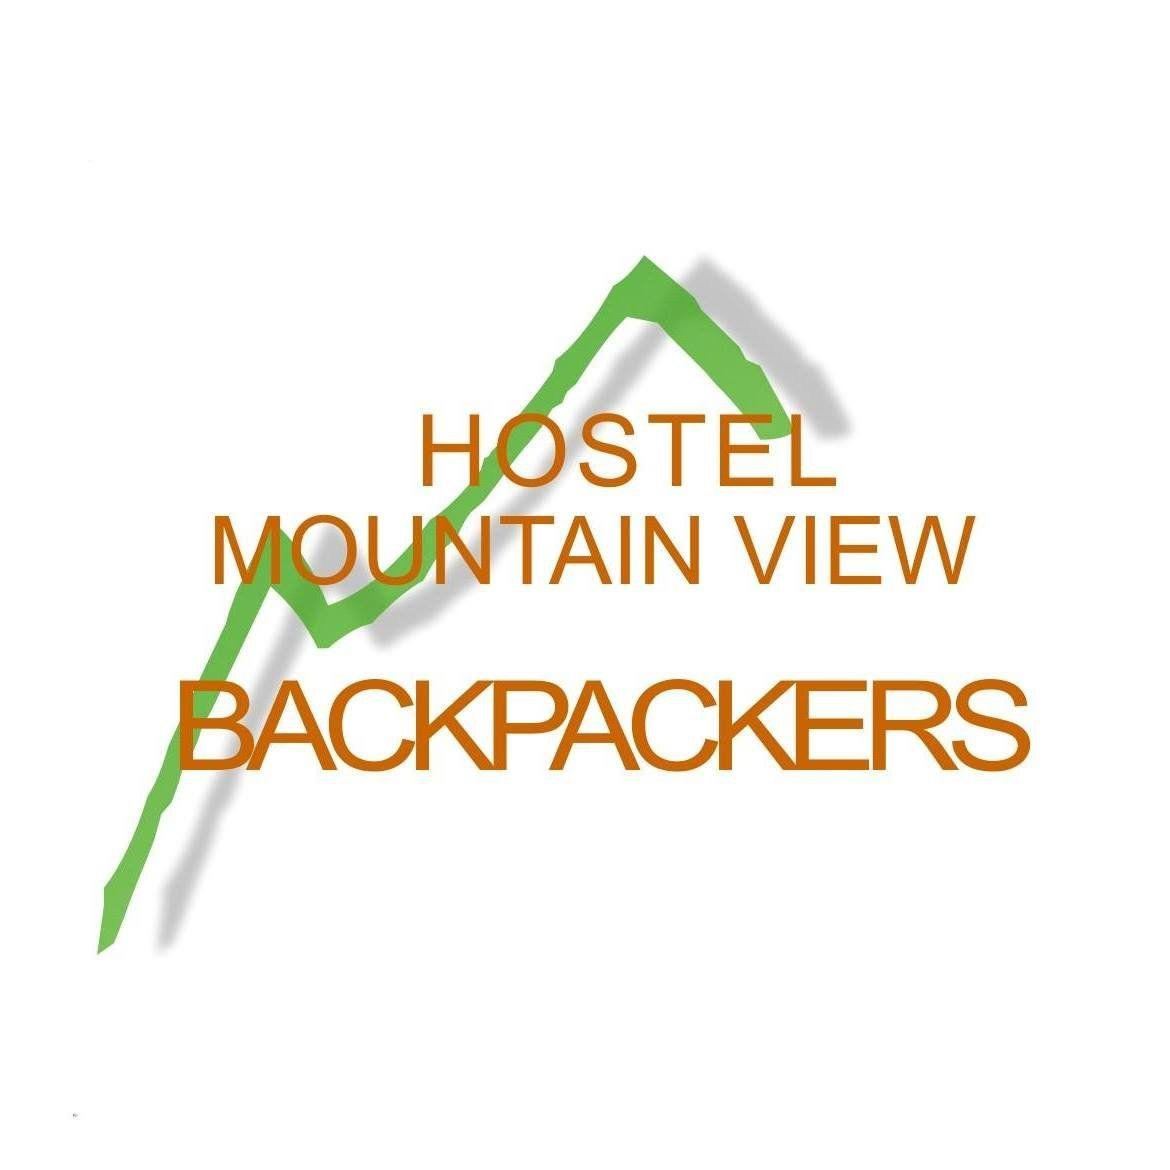 Hostal Mountain View Backpackers